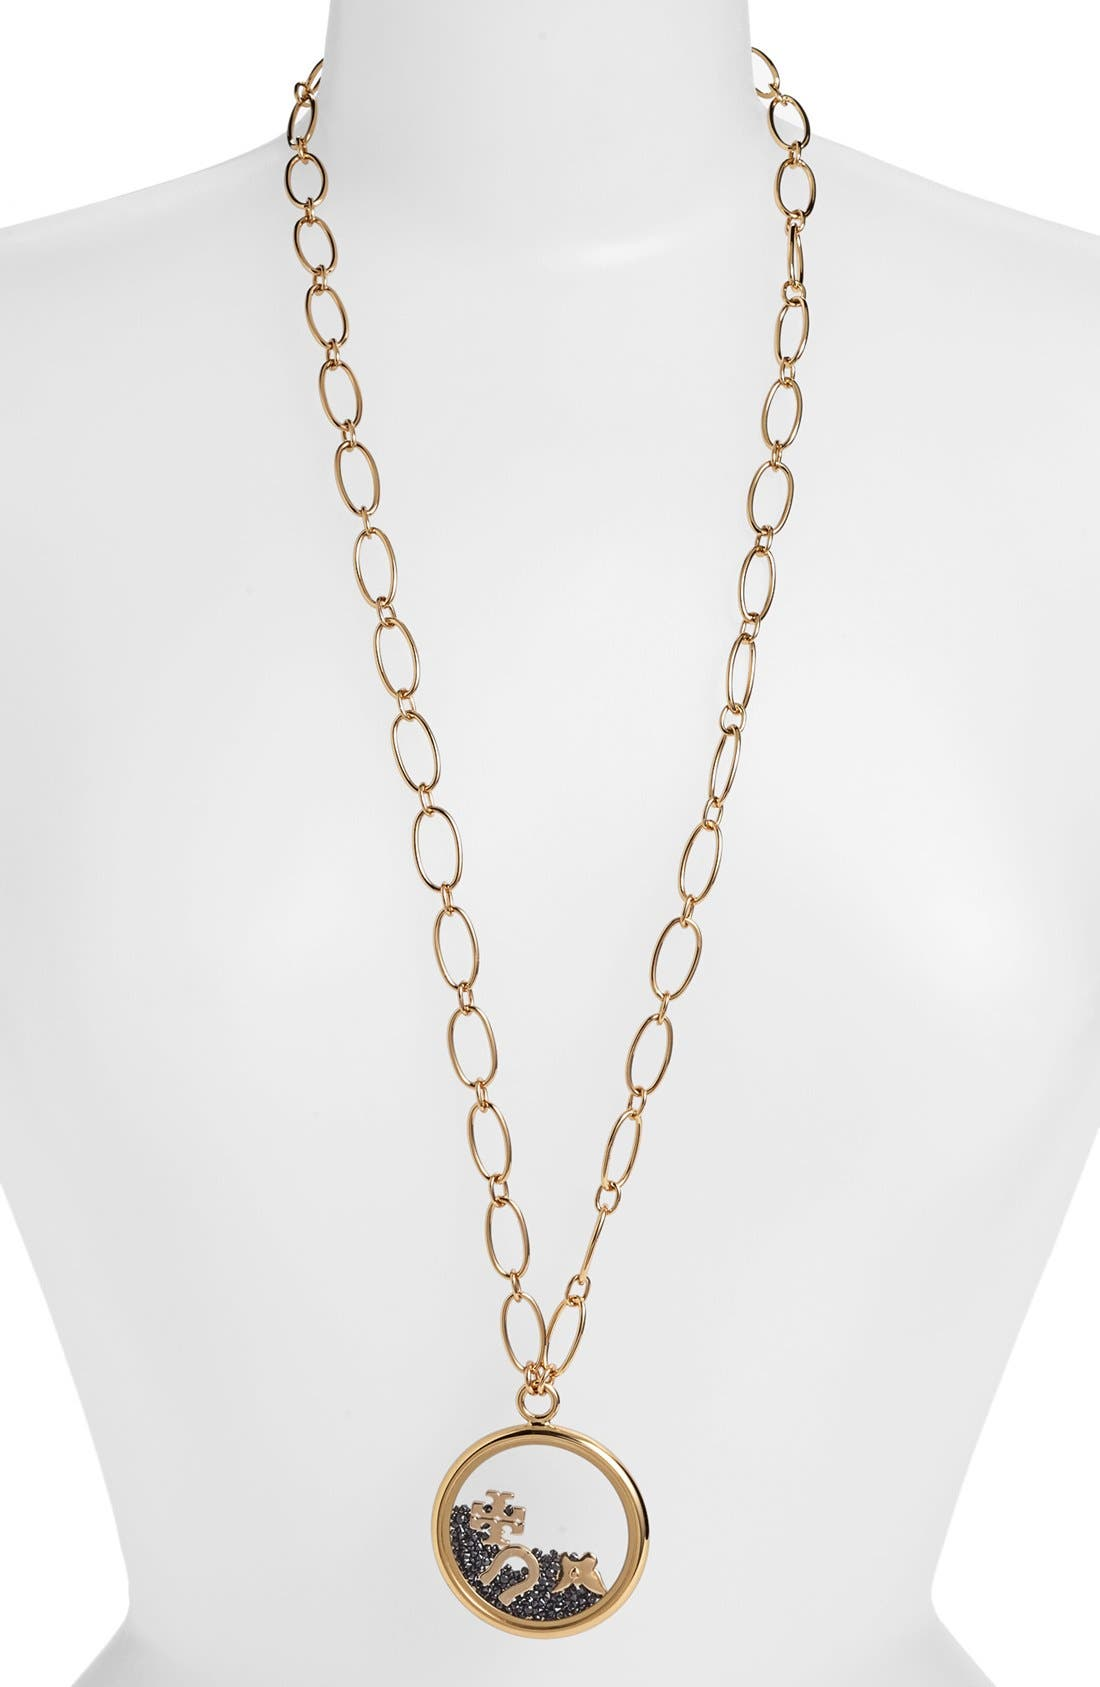 Main Image - Tory Burch 'Sylbie' Glitter Pendant Chain Necklace